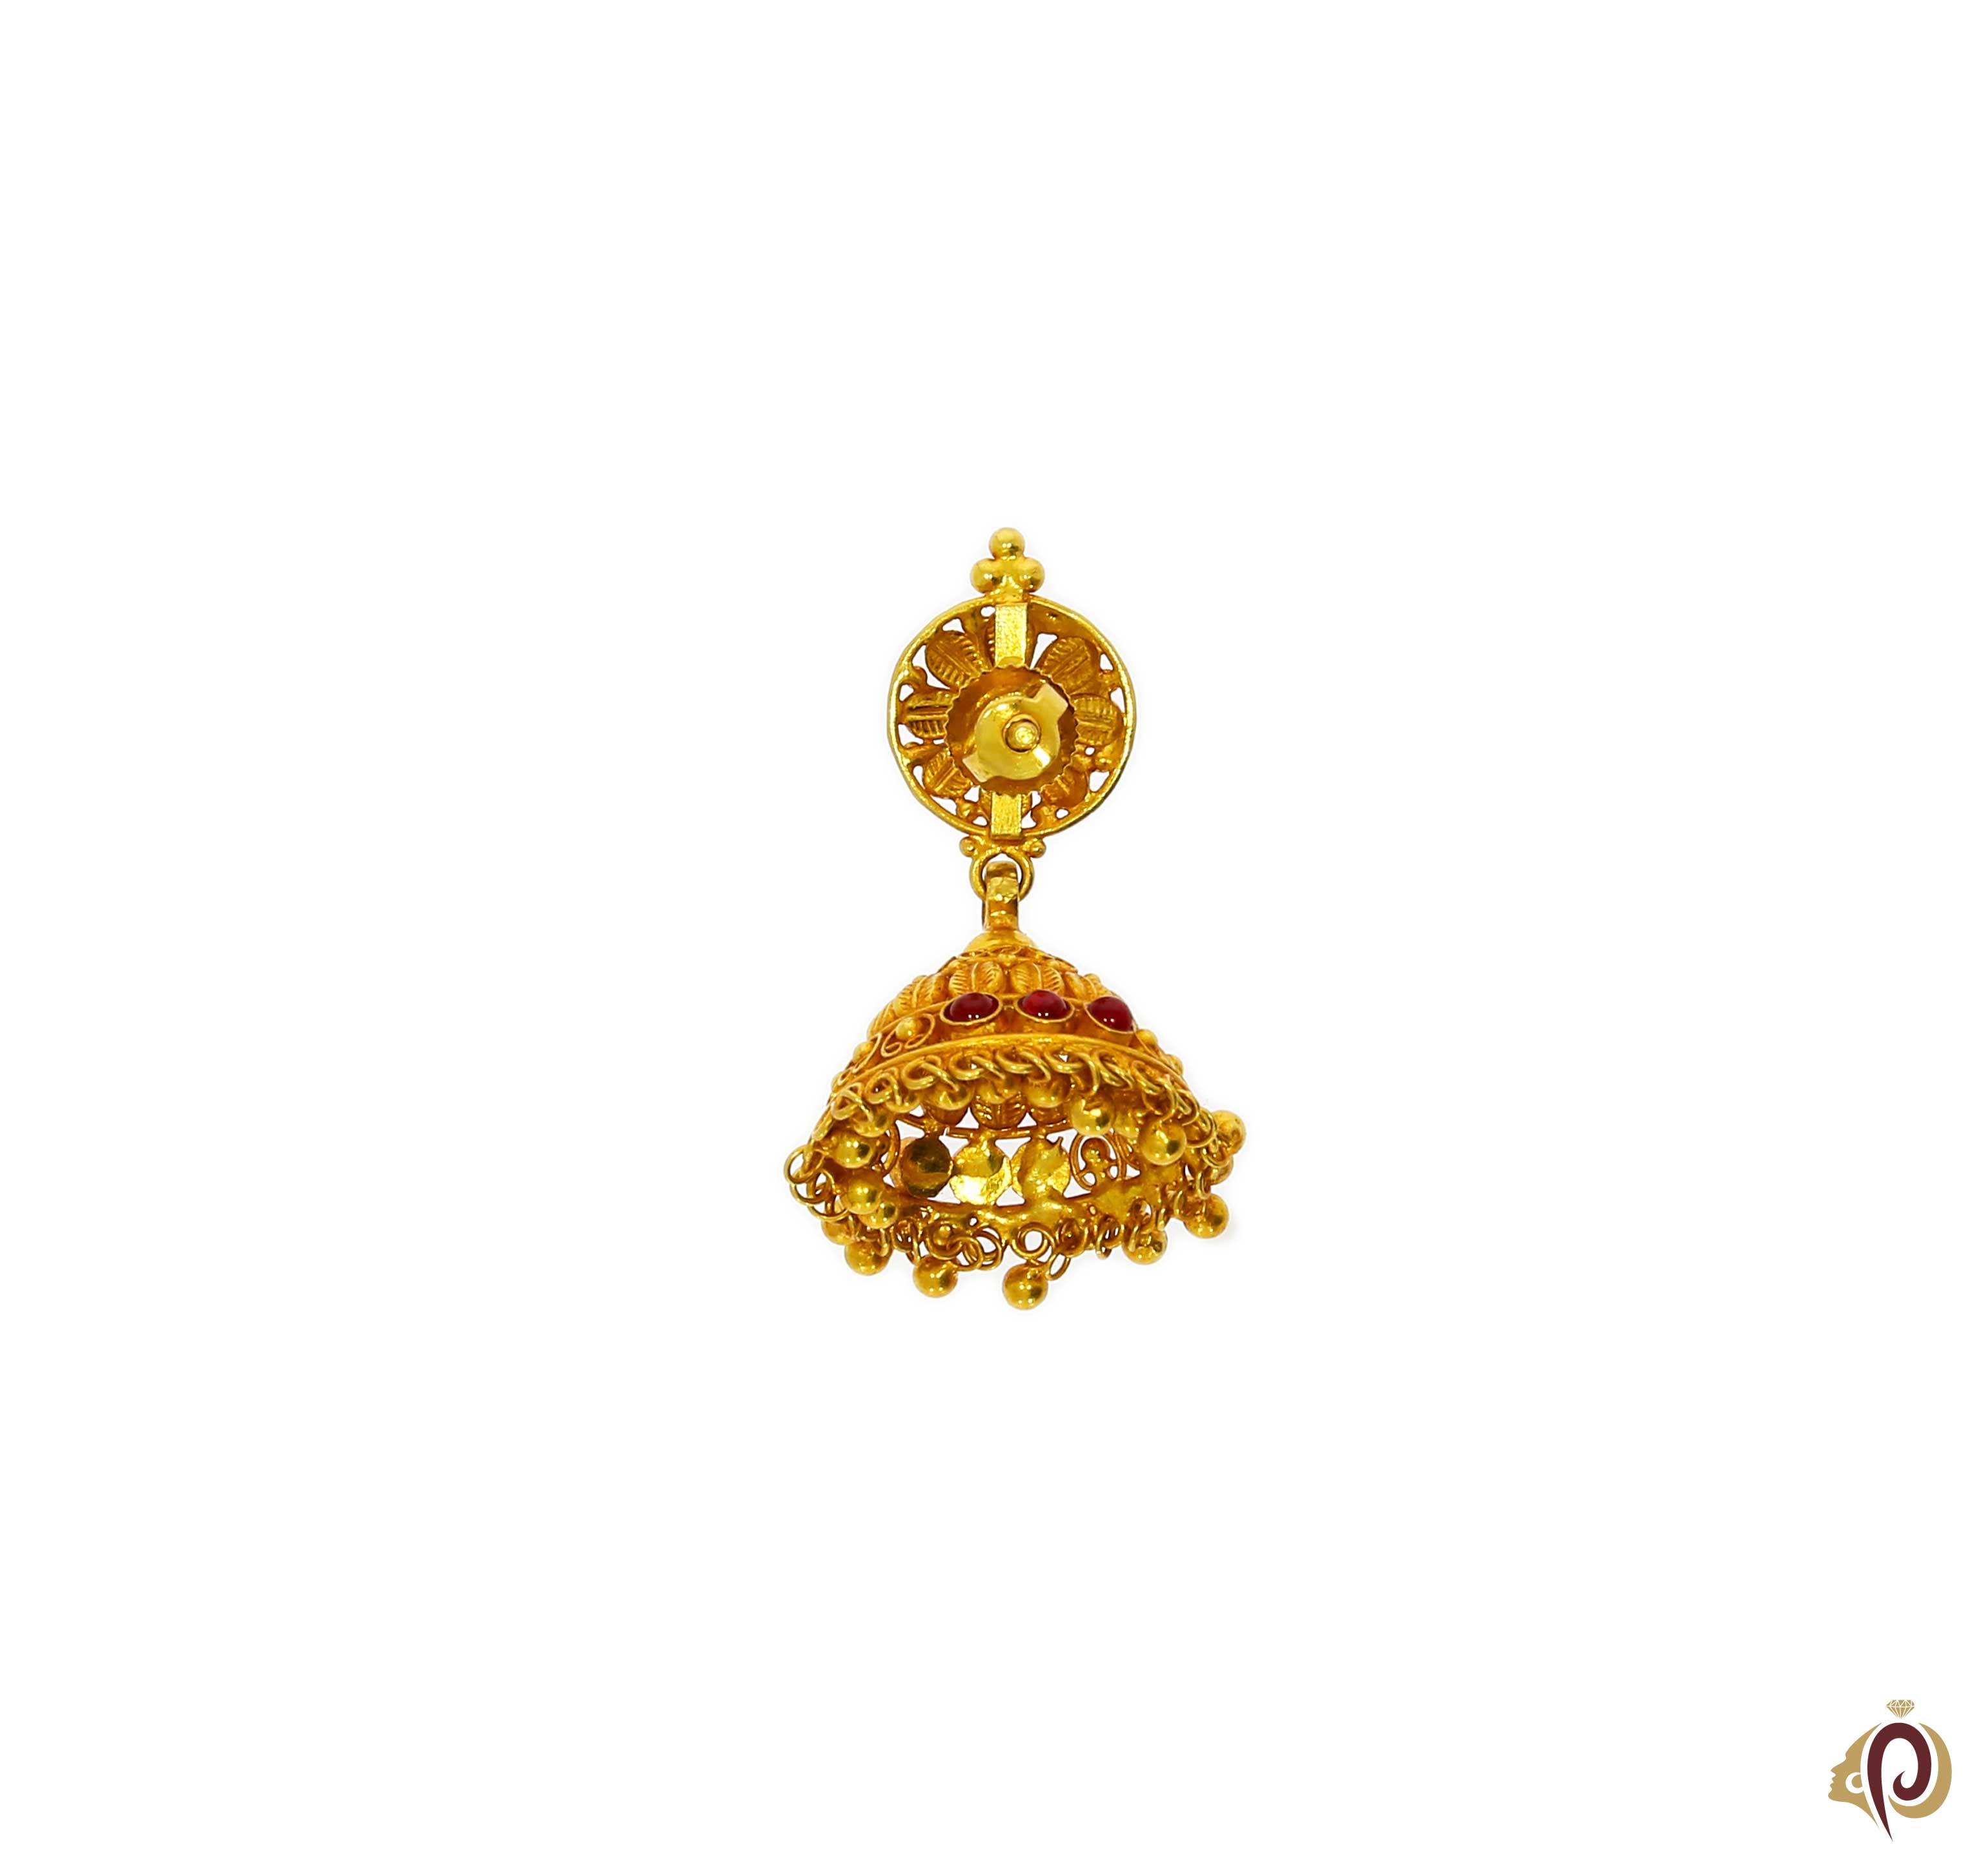 Clipart pune gold earrings vector royalty free download Beautyful Designer Red Stone Golden Zumka Tops vector royalty free download